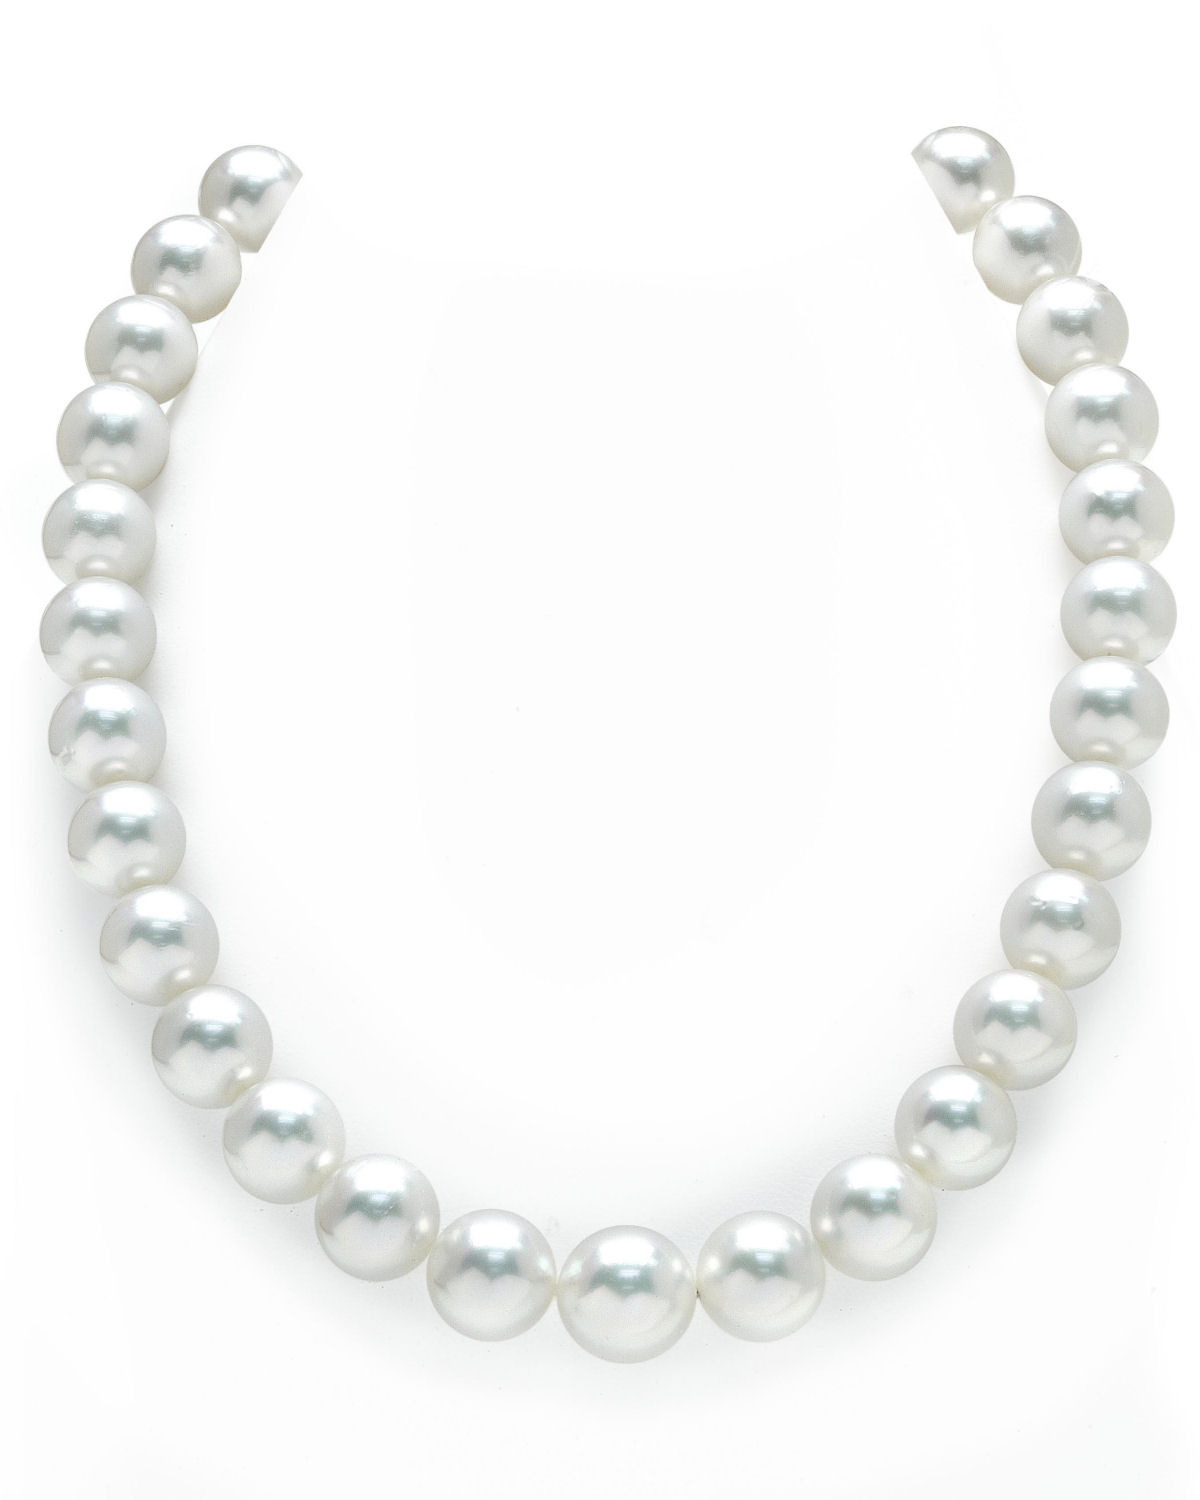 12-14mm White South Sea Pearl Necklace